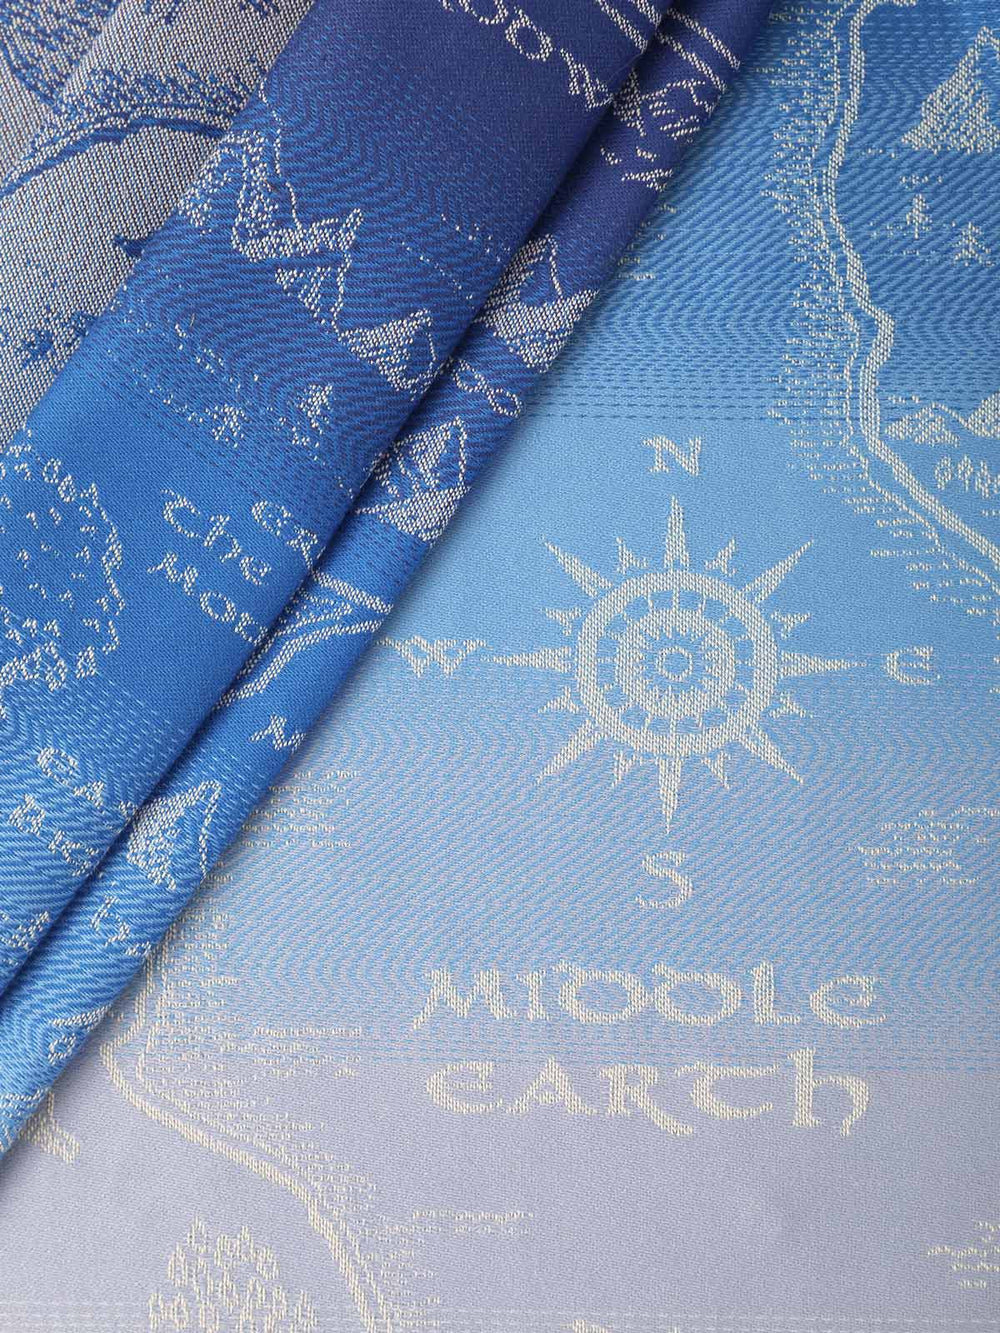 Oscha Slings Map of Middle Earth Aduial Baby Wrap